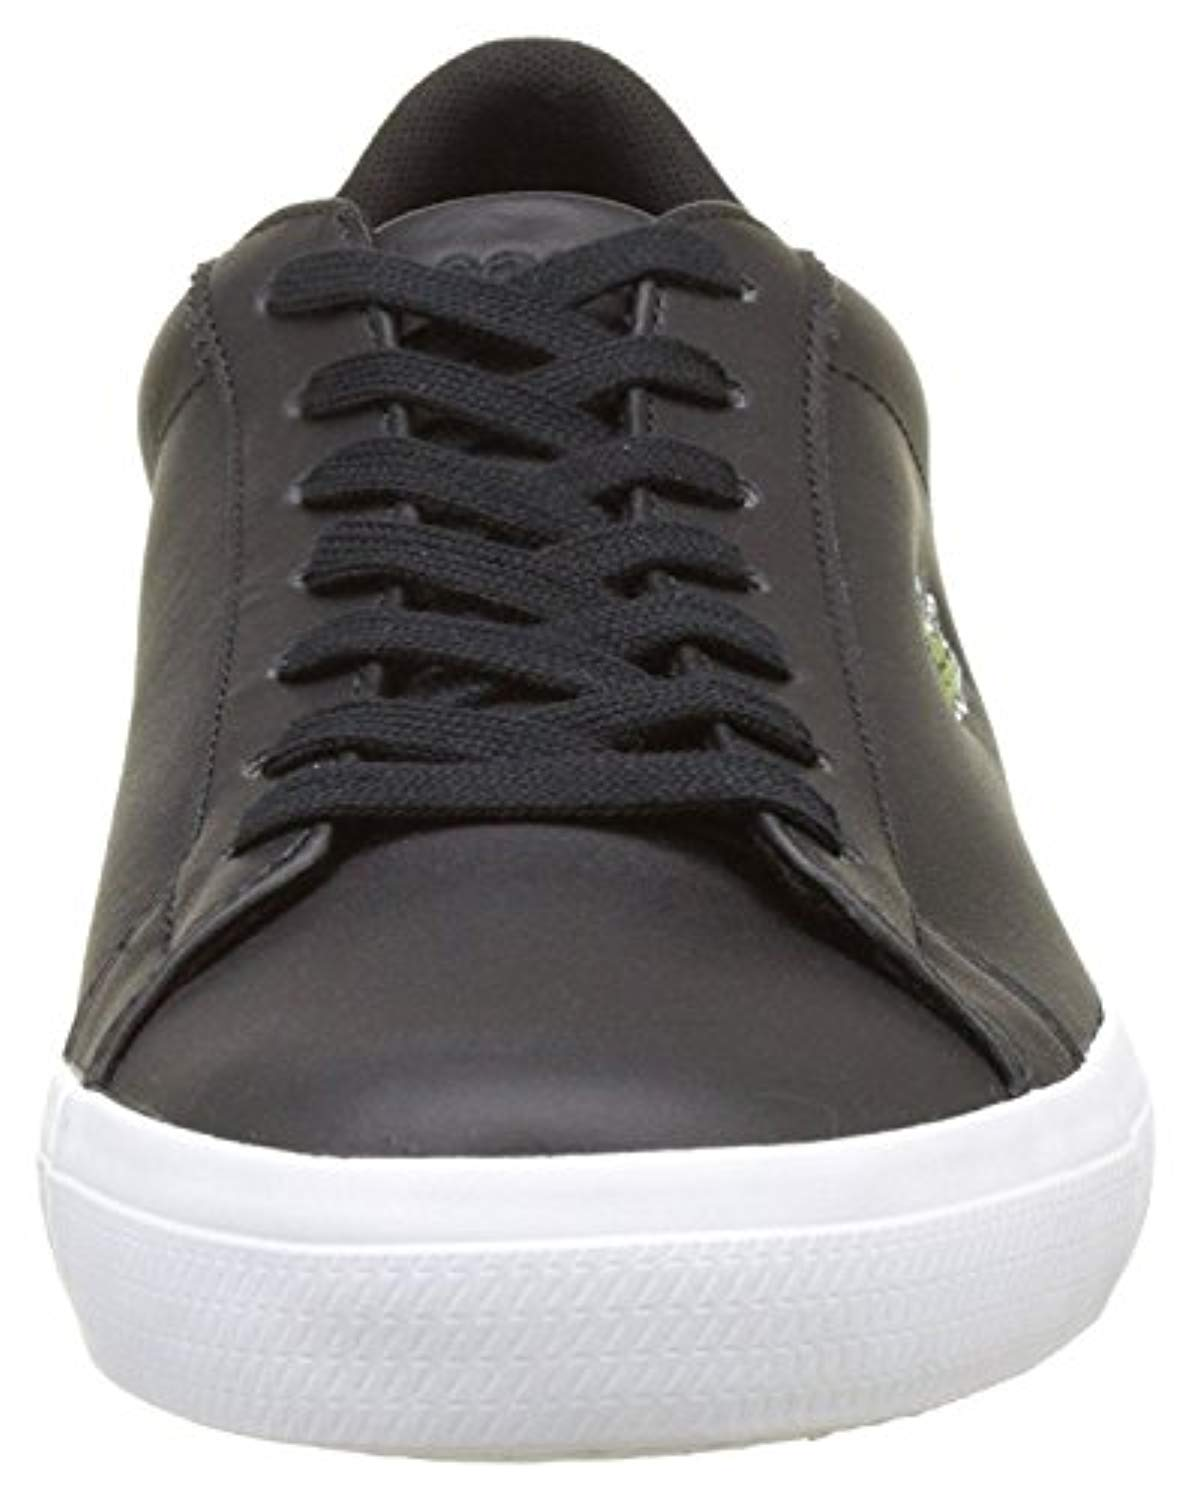 71eb64d34ae8 136 Lacoste Lerond BL 1 Cam Black White Leather Mens Trainers ...